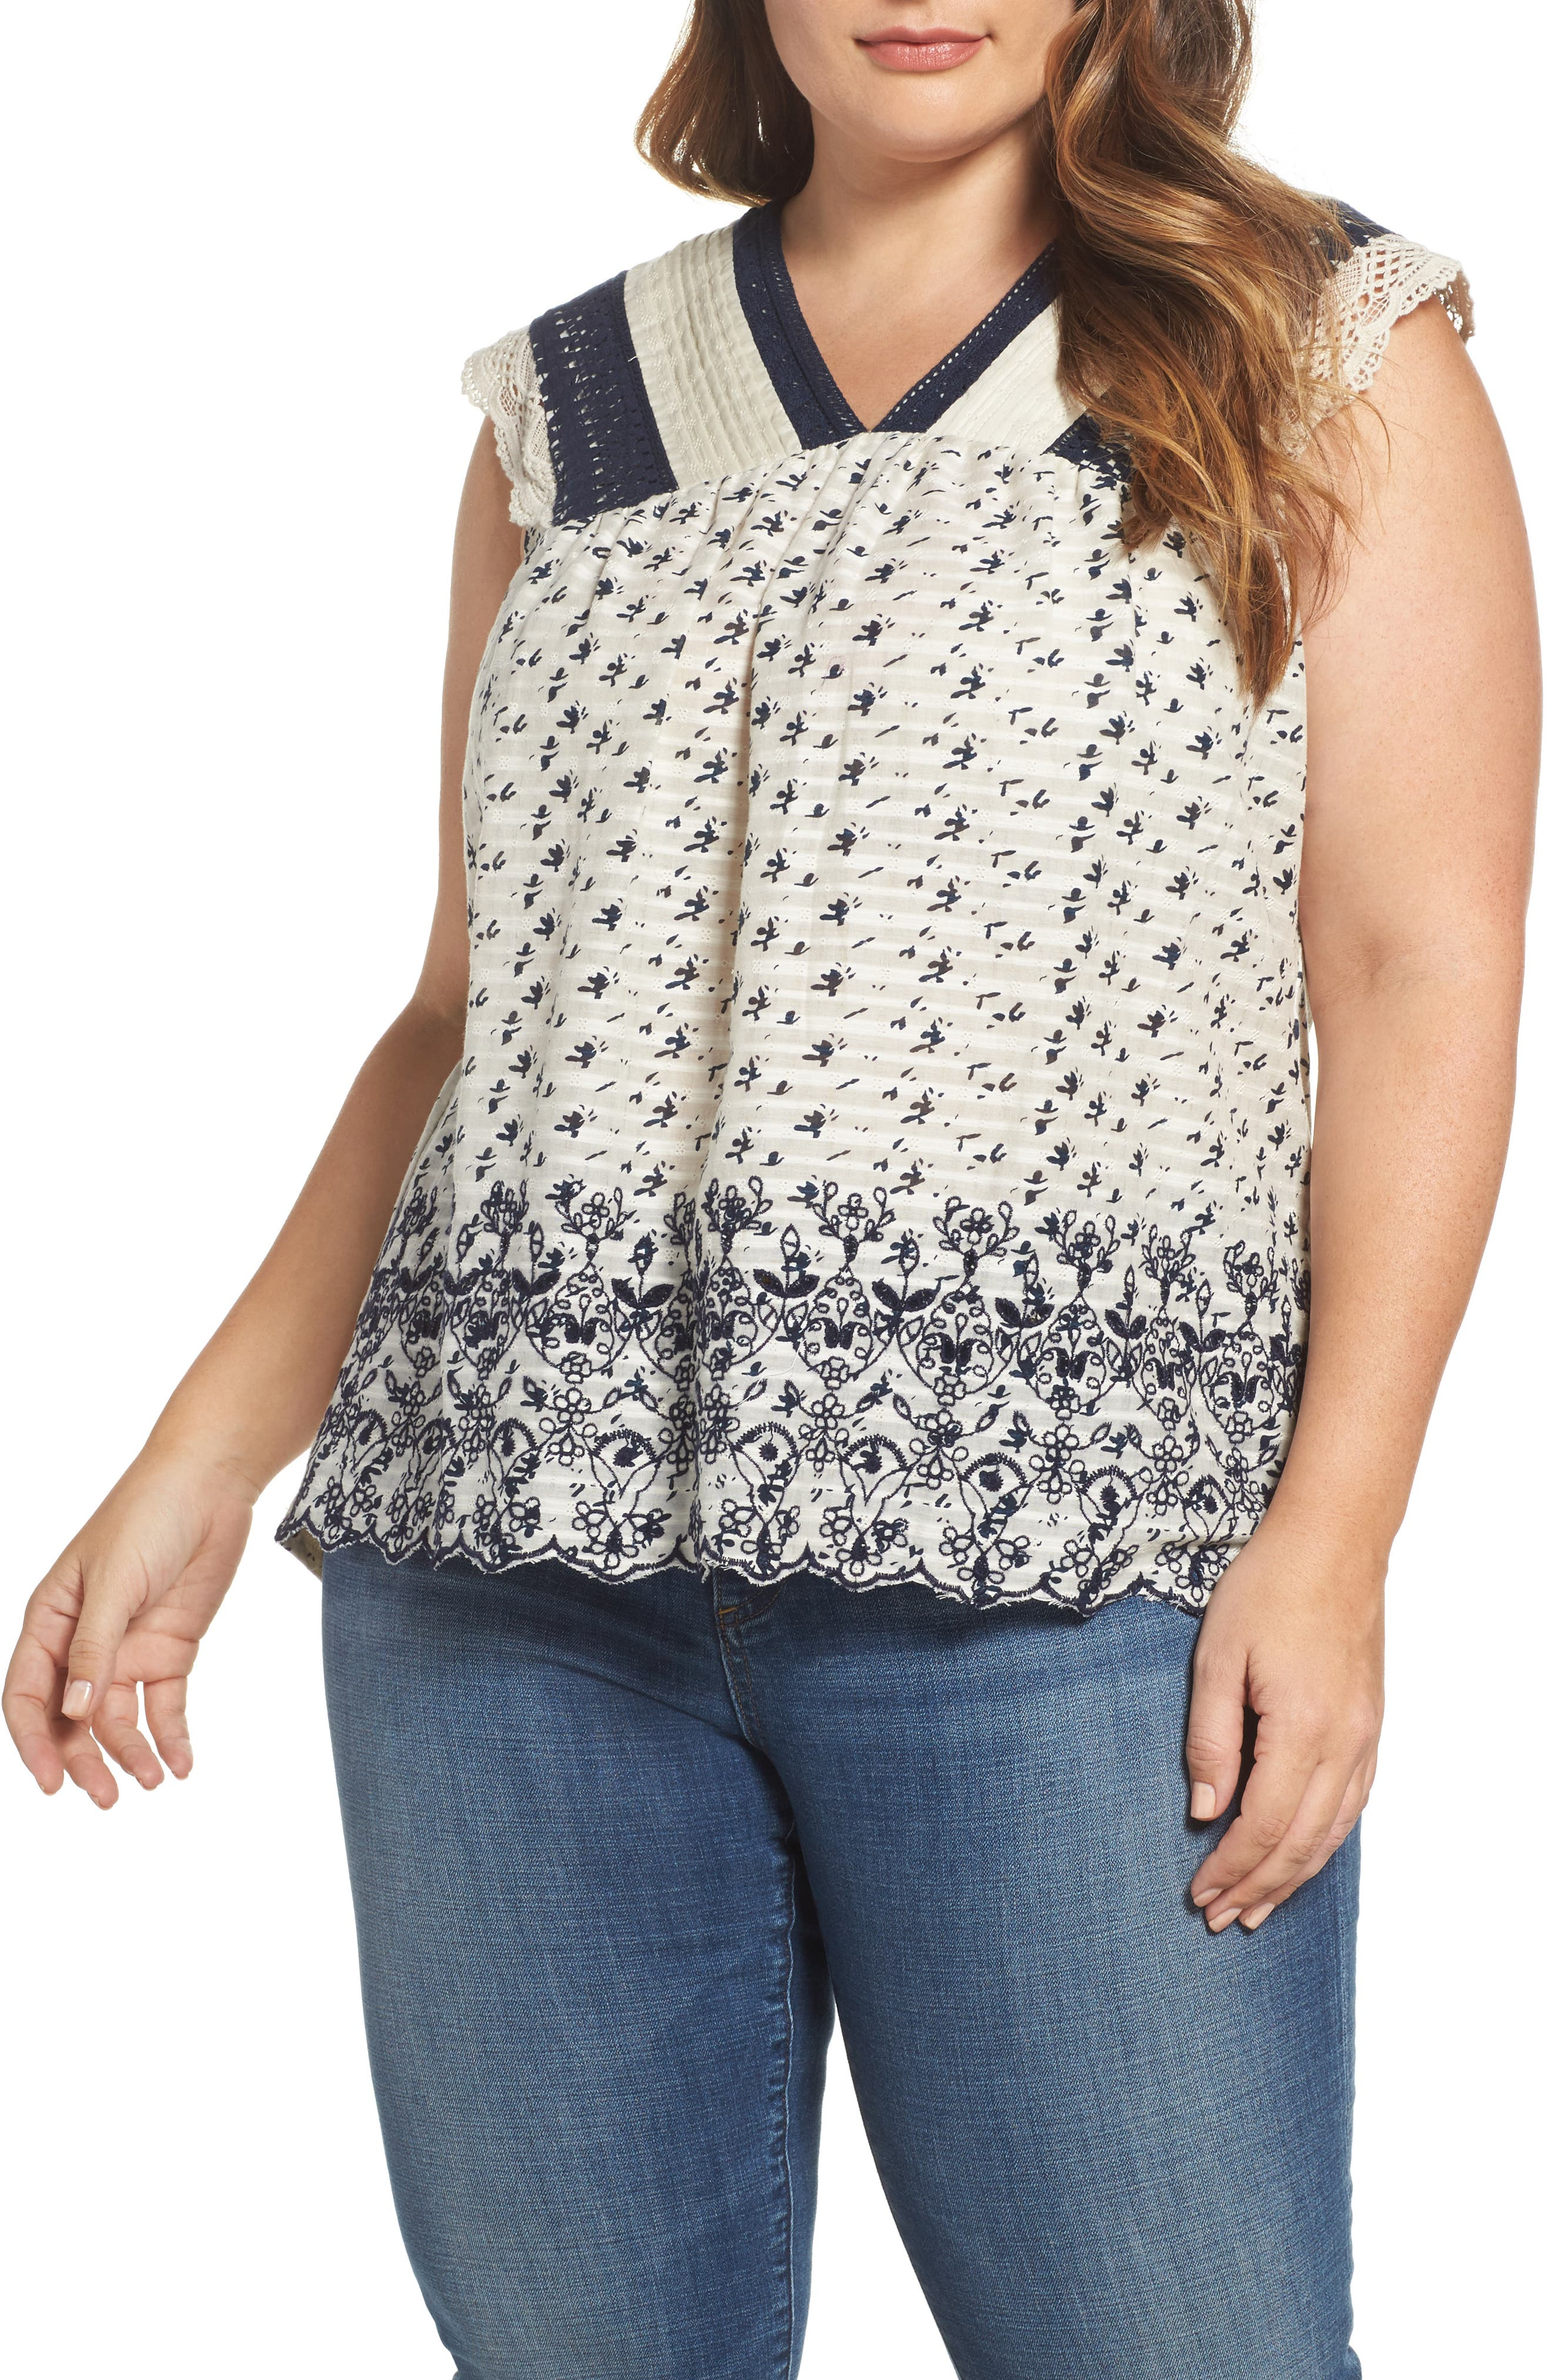 Alternate Image 1 Selected - Lucky Brand Embroidered Print Flutter Top (Plus Size)